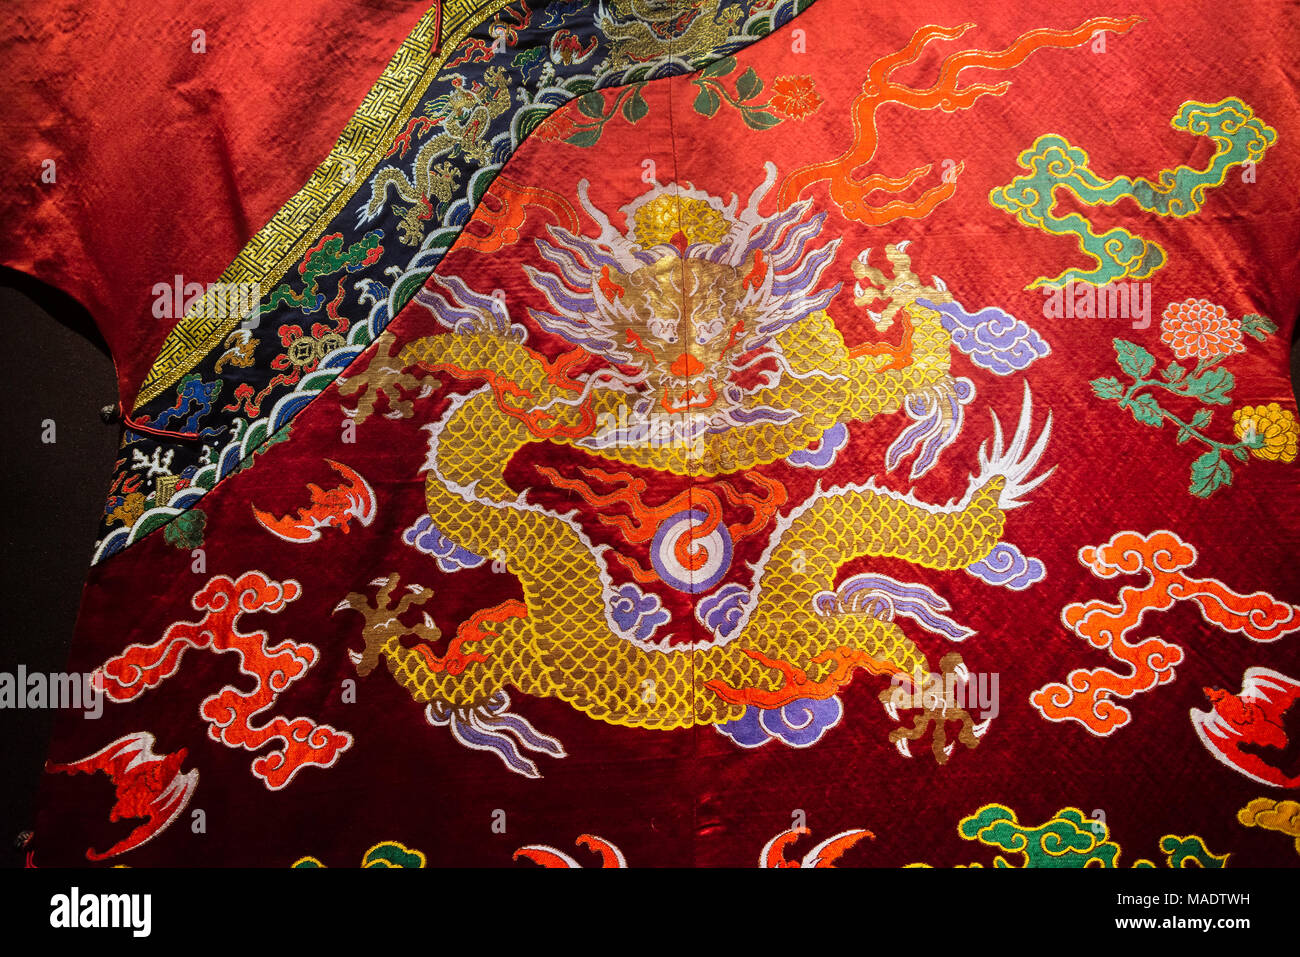 Imperial robe on display in Presidential Palace, Nanjing, Jiangsu Province, China - Stock Image